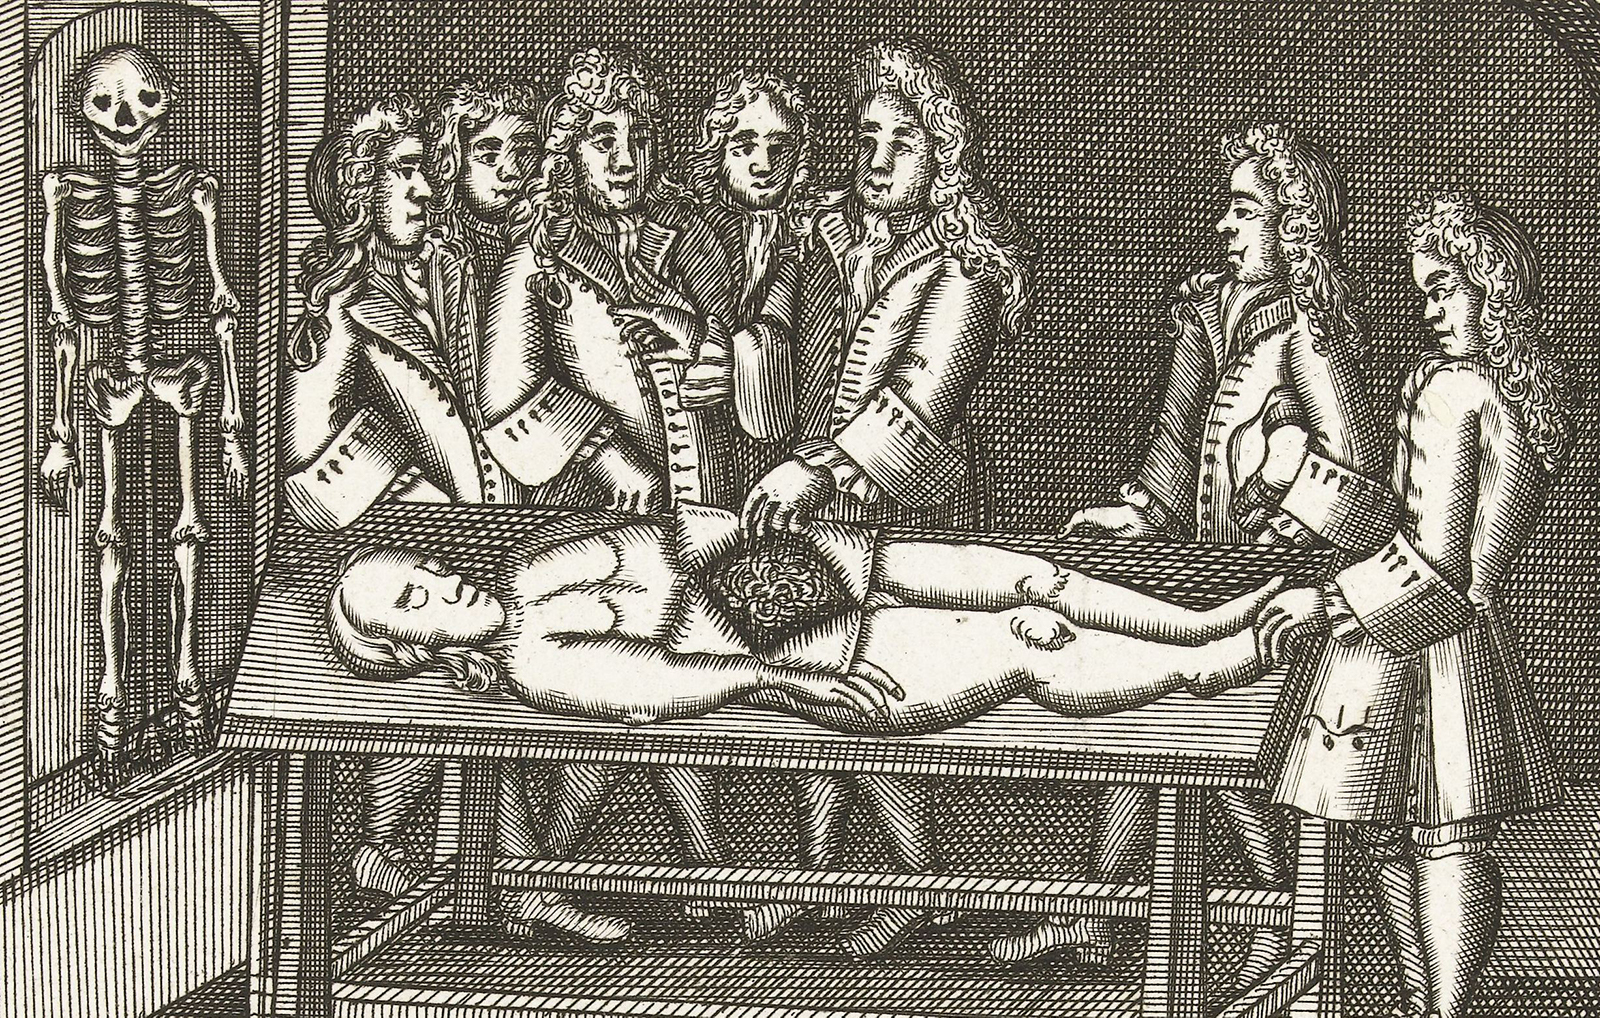 Men in 18th-century clothing watching a dissection